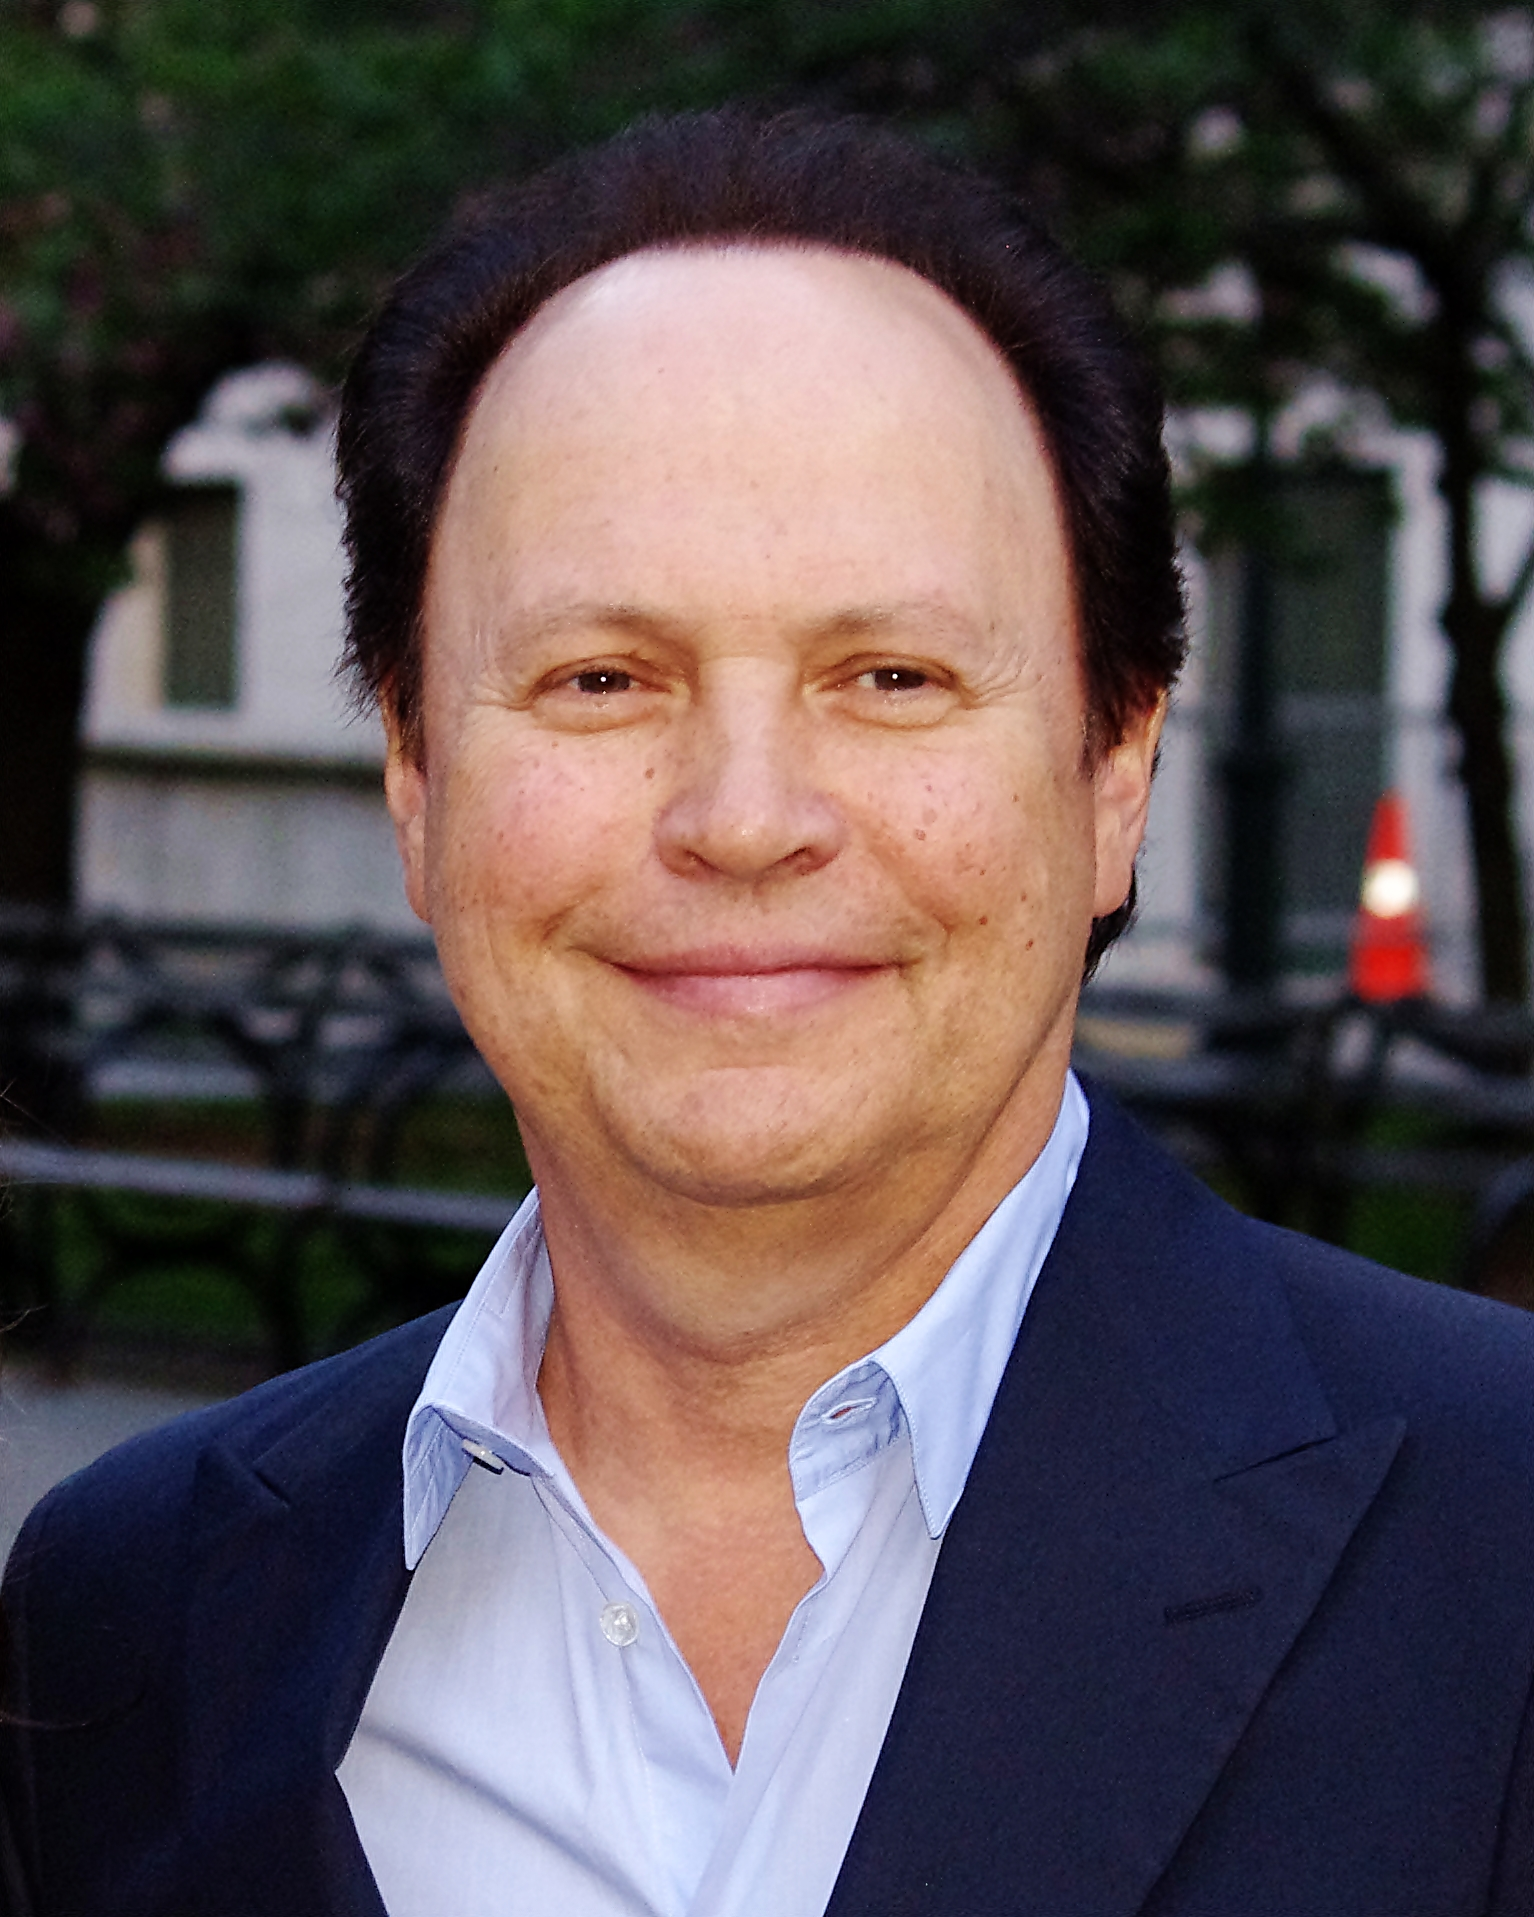 Billy Crystal quotes (7 quotes) | Quotes of famous people